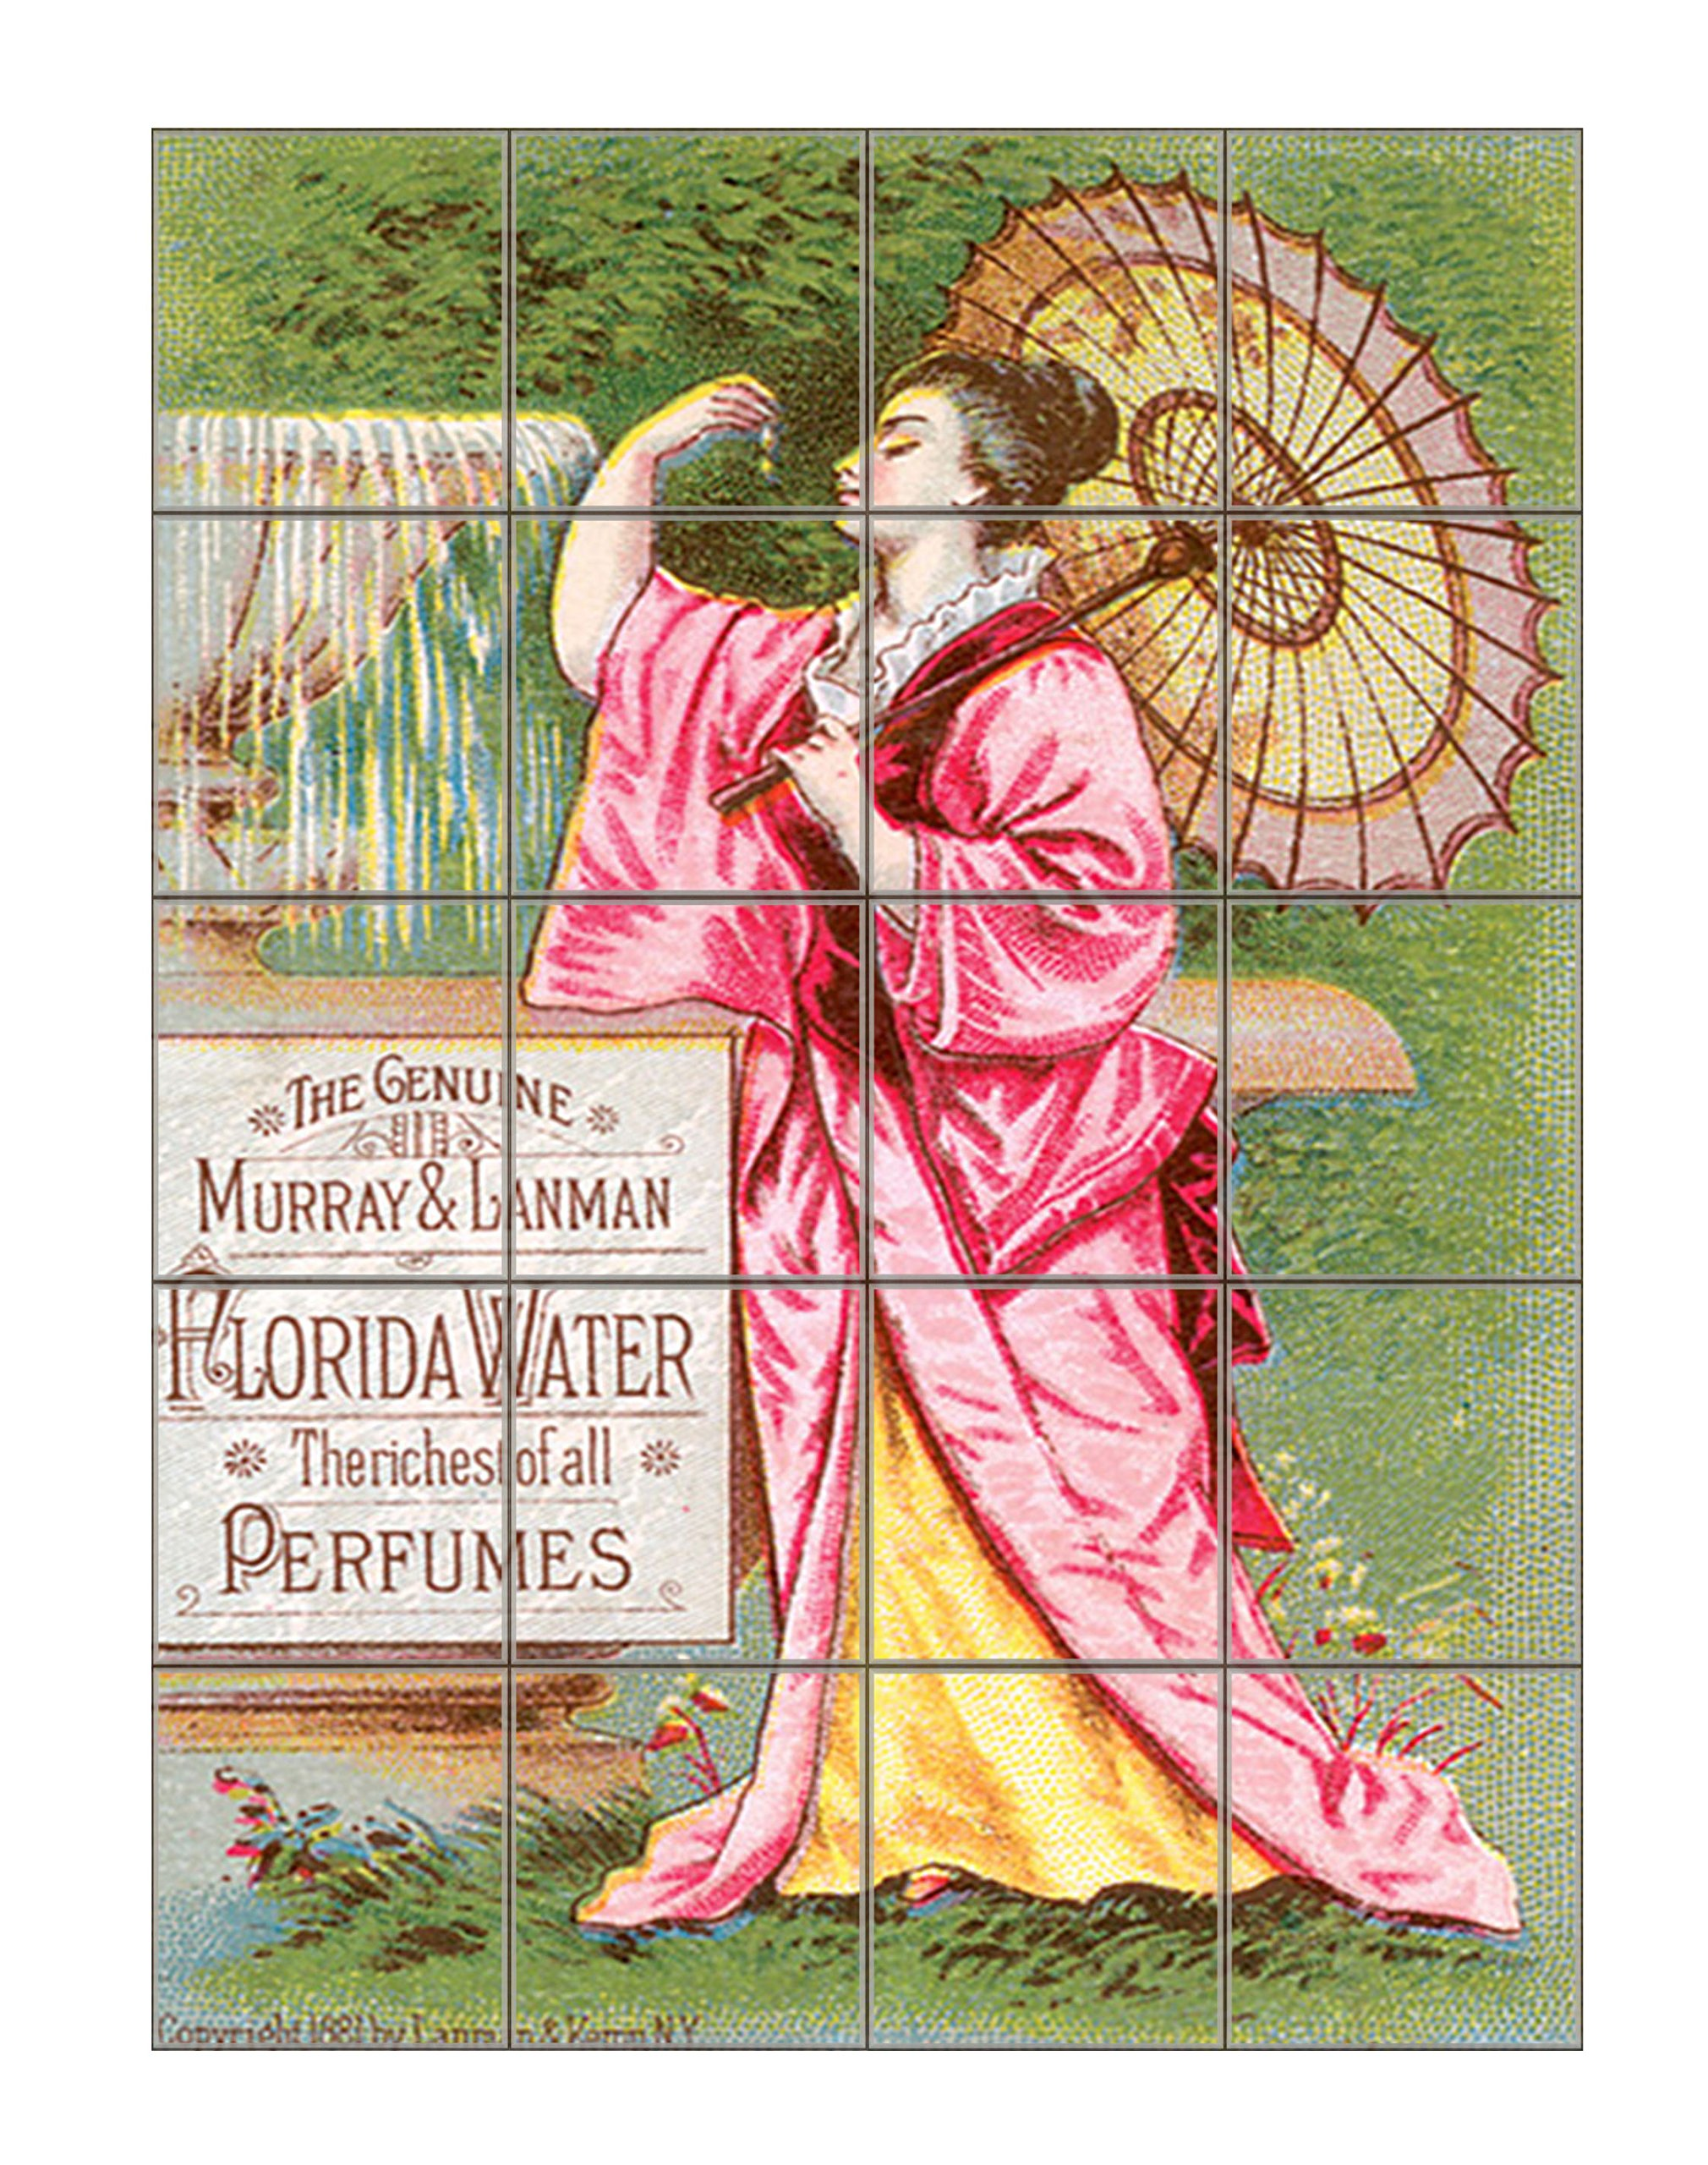 Woman With A Pink Dress Vintage Perfume Vertical Tile Mural Satin Finish 30''Hx24''W 6 Inch Tile by Style in Print